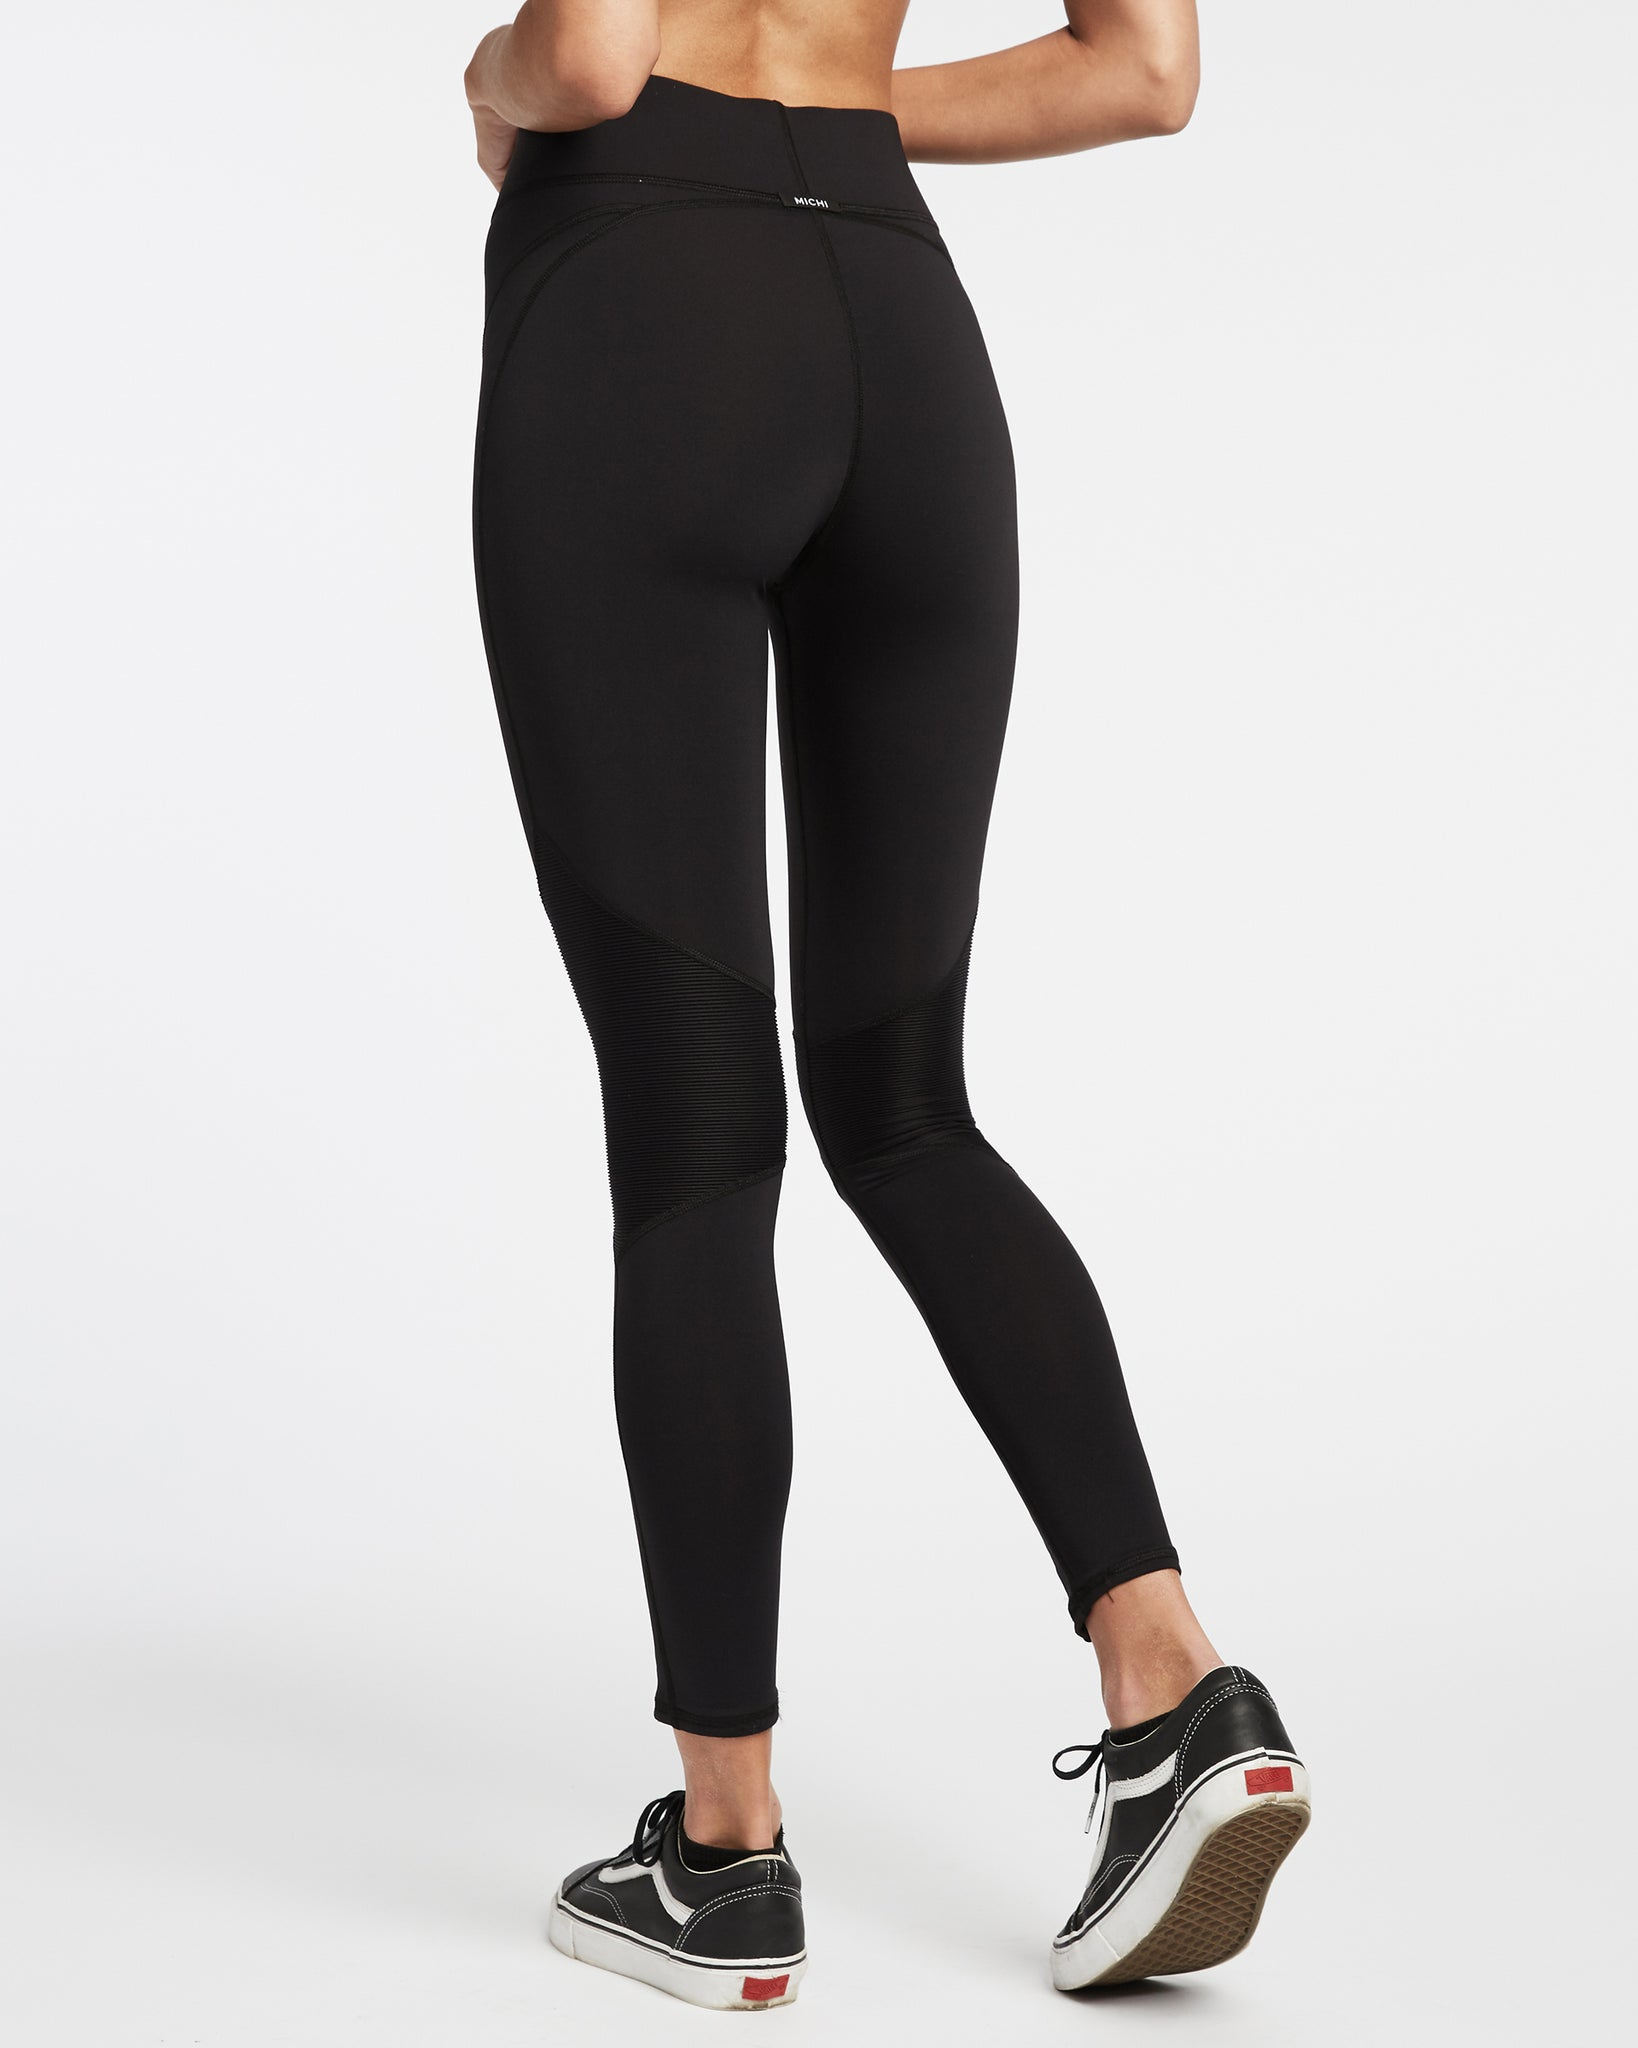 Strada Legging - Black